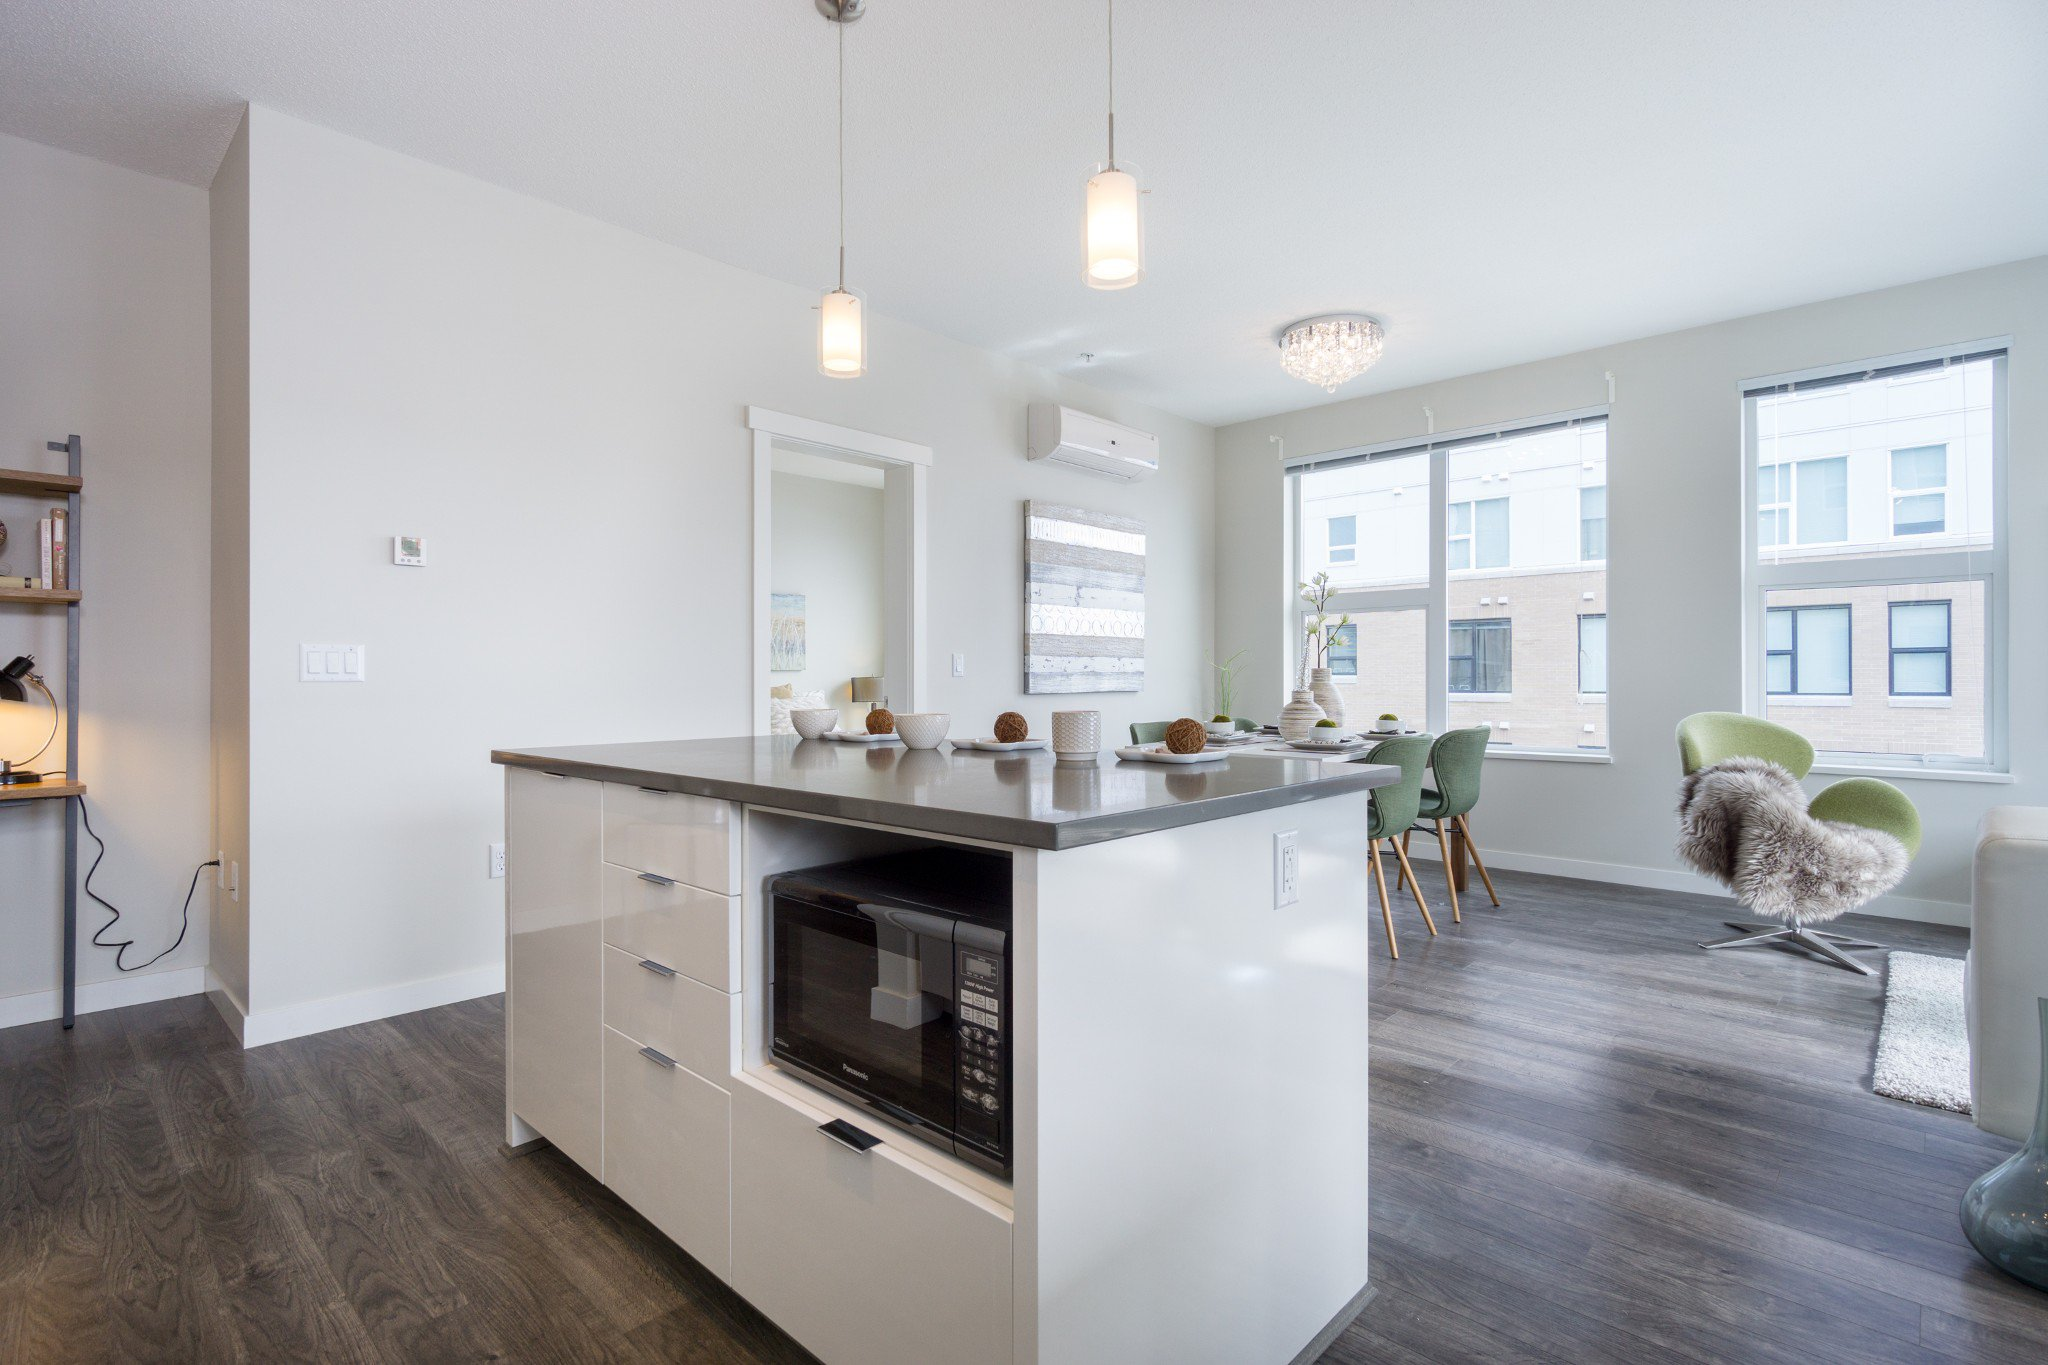 """Photo 11: Photos: 303 9311 ALEXANDRA Road in Richmond: West Cambie Condo for sale in """"ALEXANDRA COURT"""" : MLS®# R2347629"""